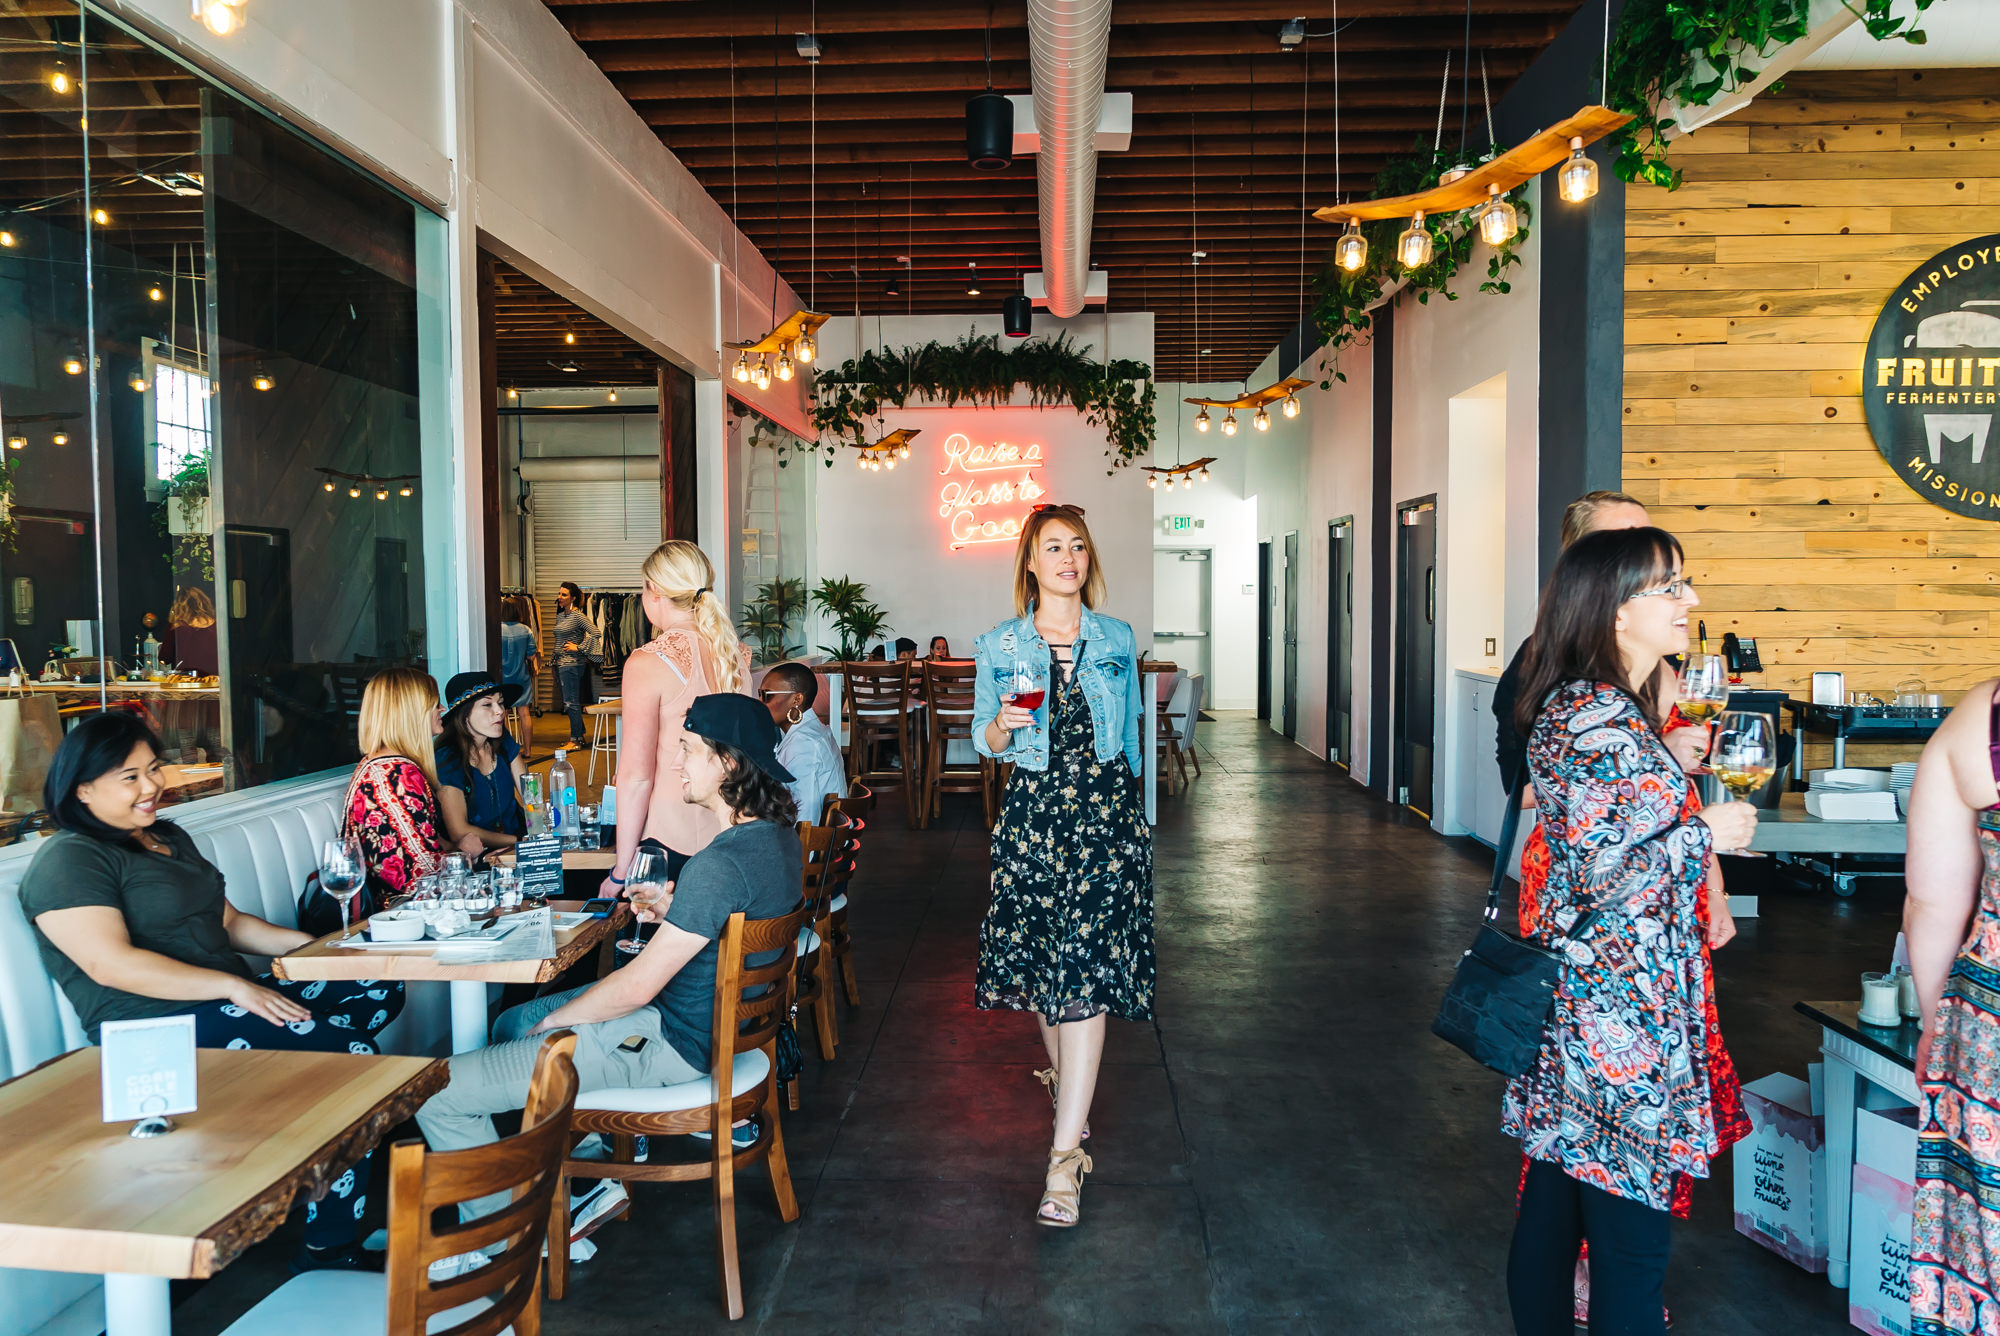 The lovely space at FruitCraft in Hillcrest, San Diego